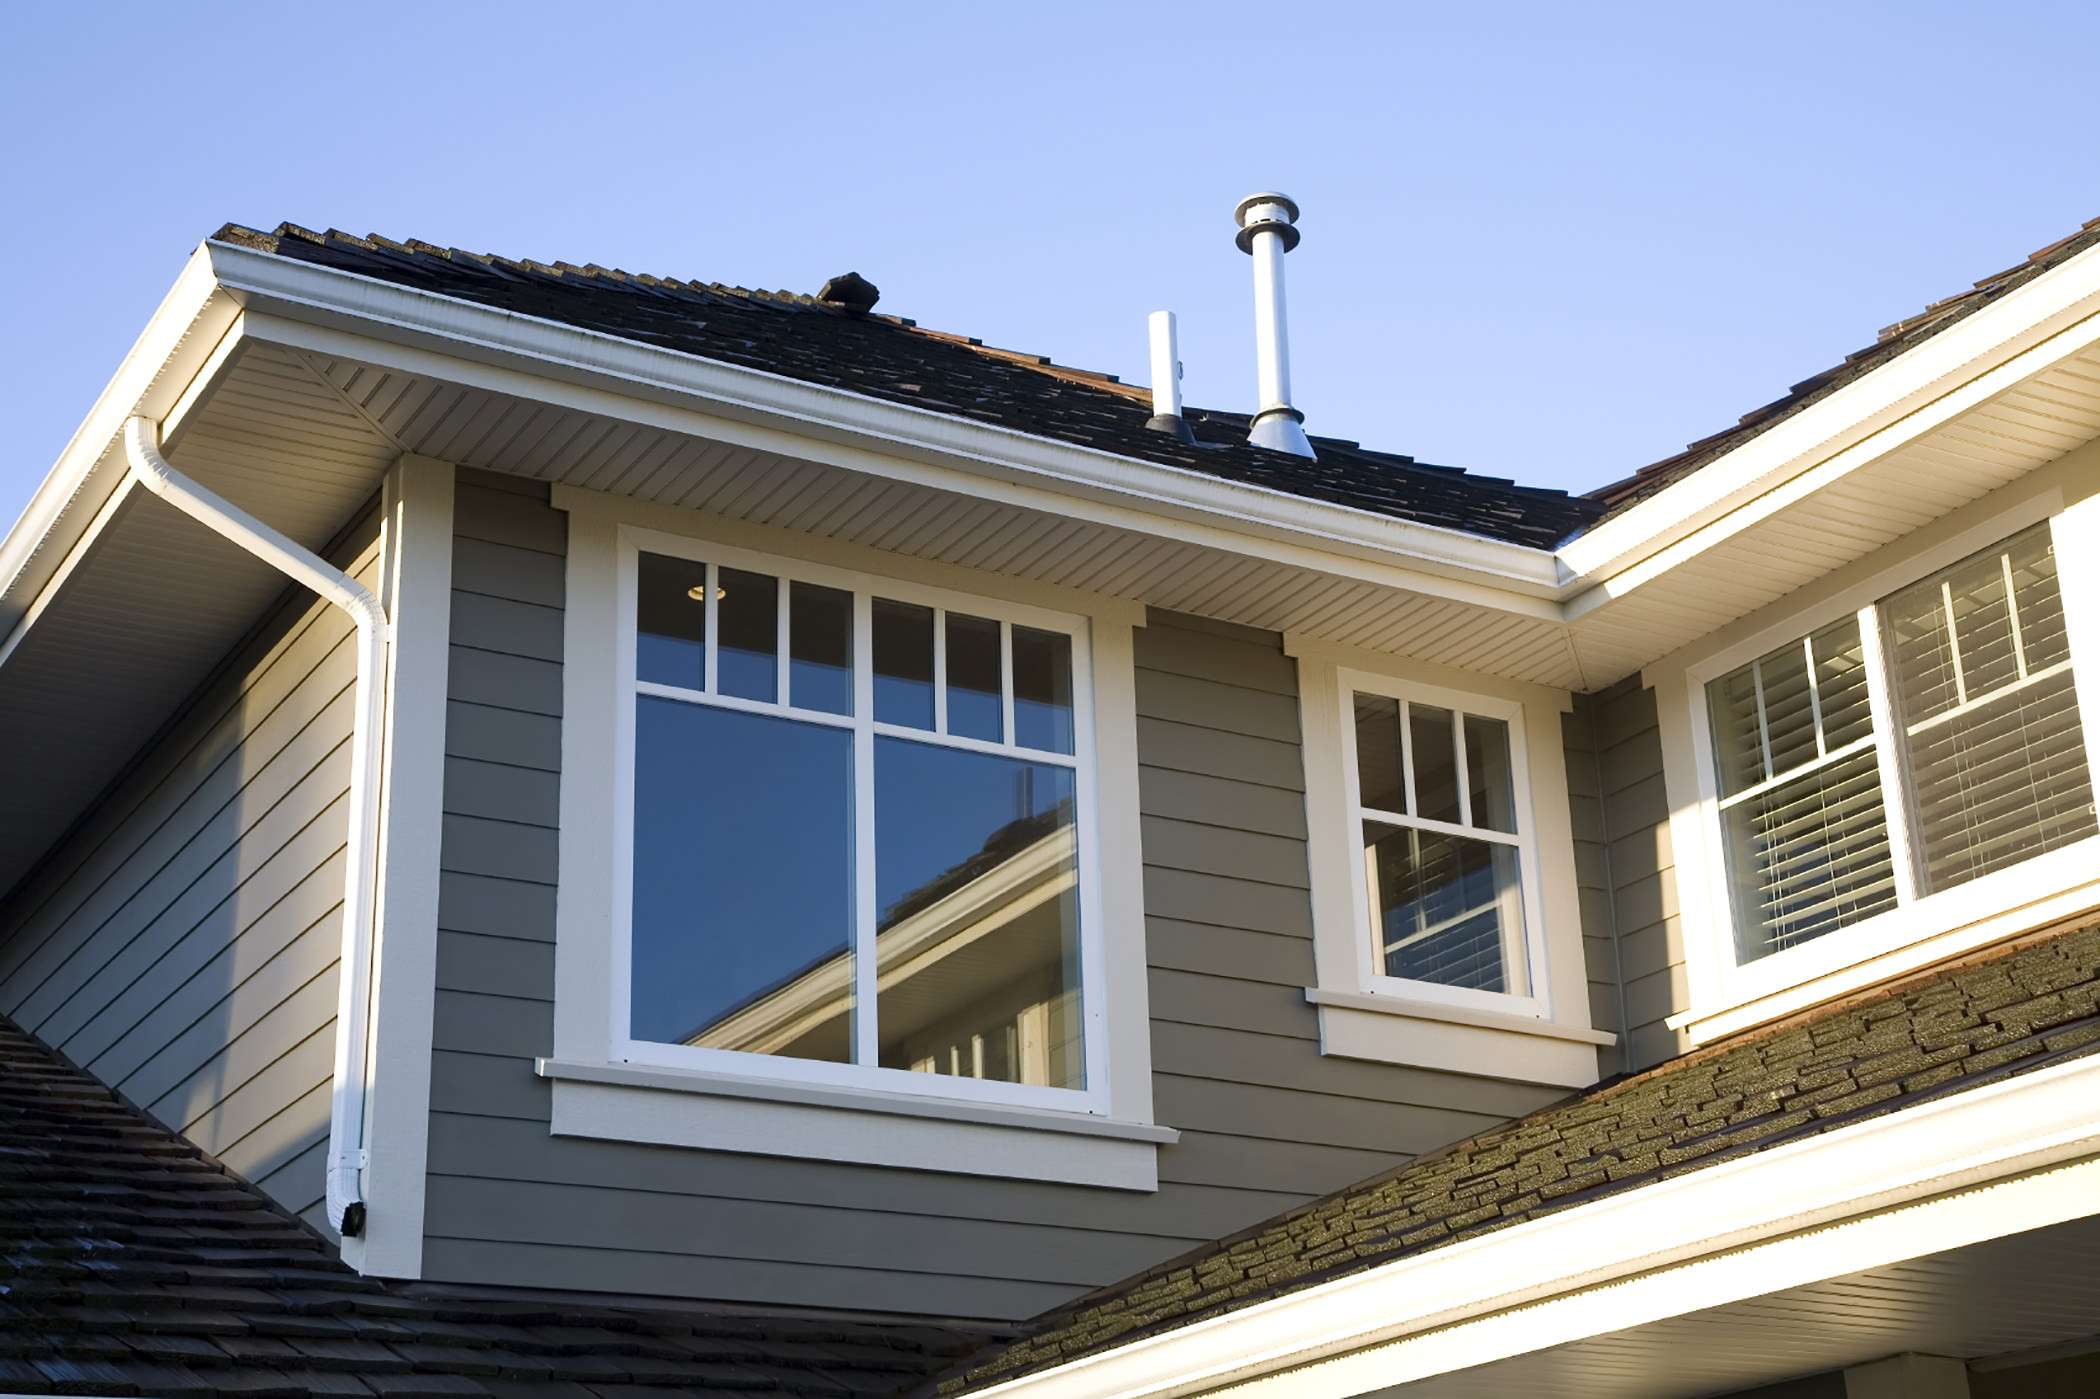 Gray siding with a black roof and a few white hung windowsé